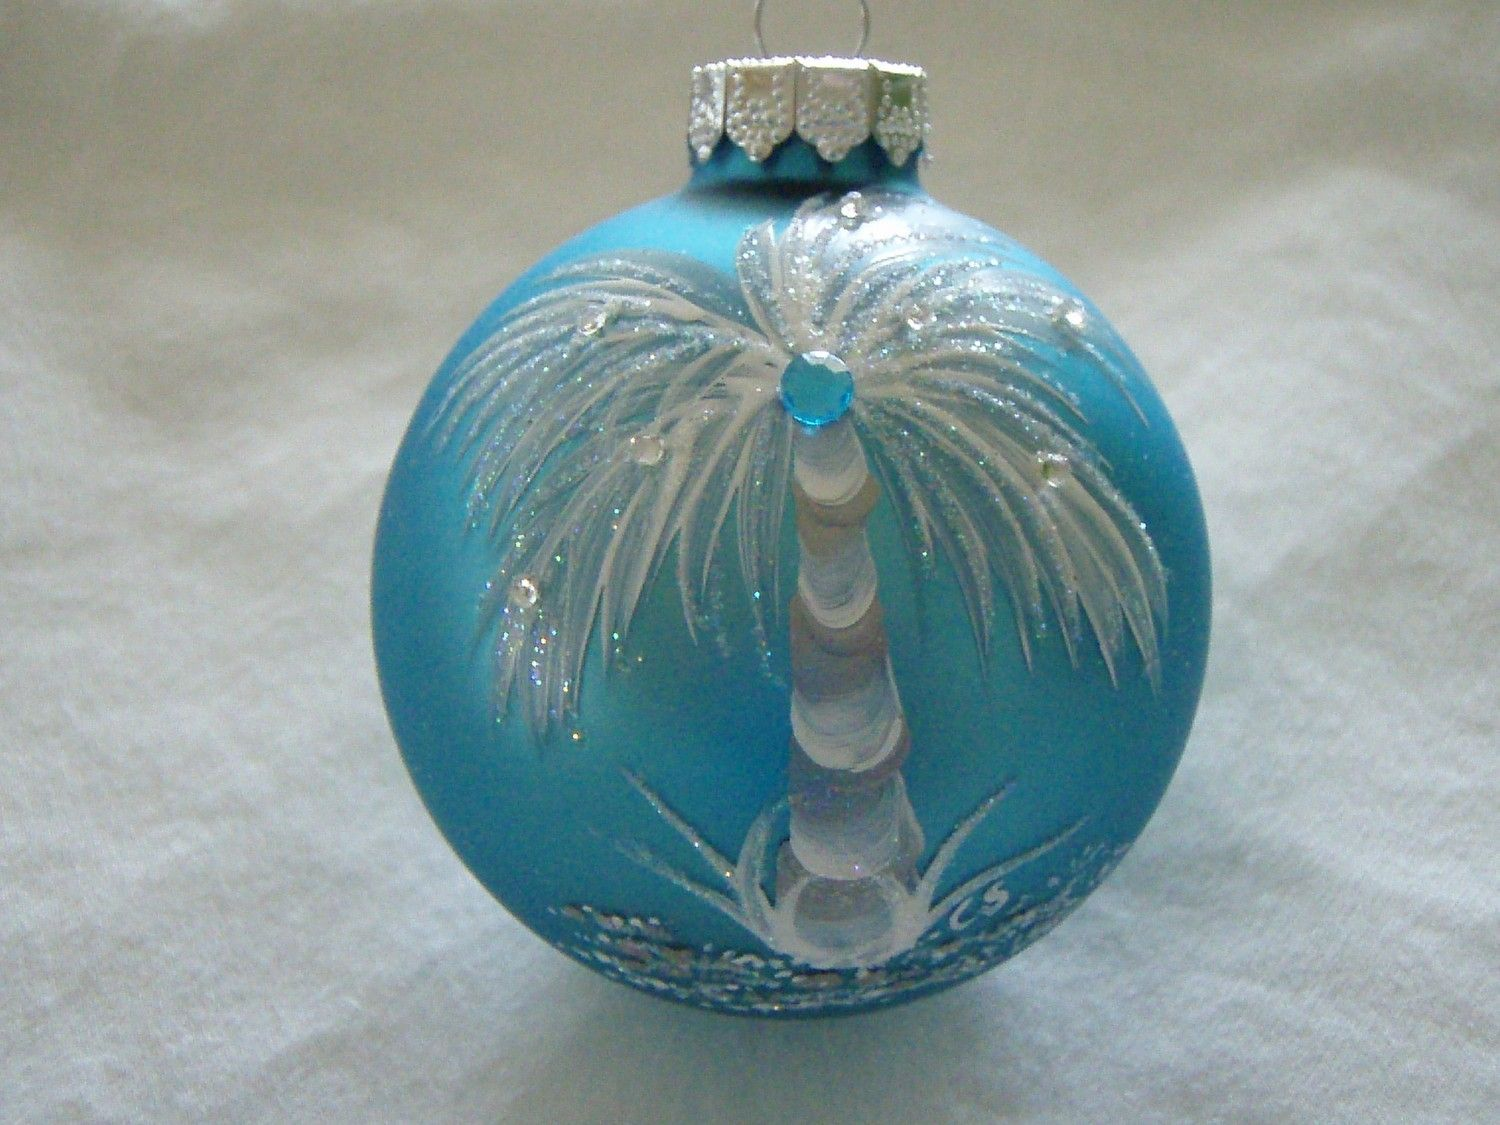 Tropical Hand Painted Turquoise Glass Ornament Etsy Painted Christmas Ornaments Christmas Ornaments Handmade Christmas Ornaments